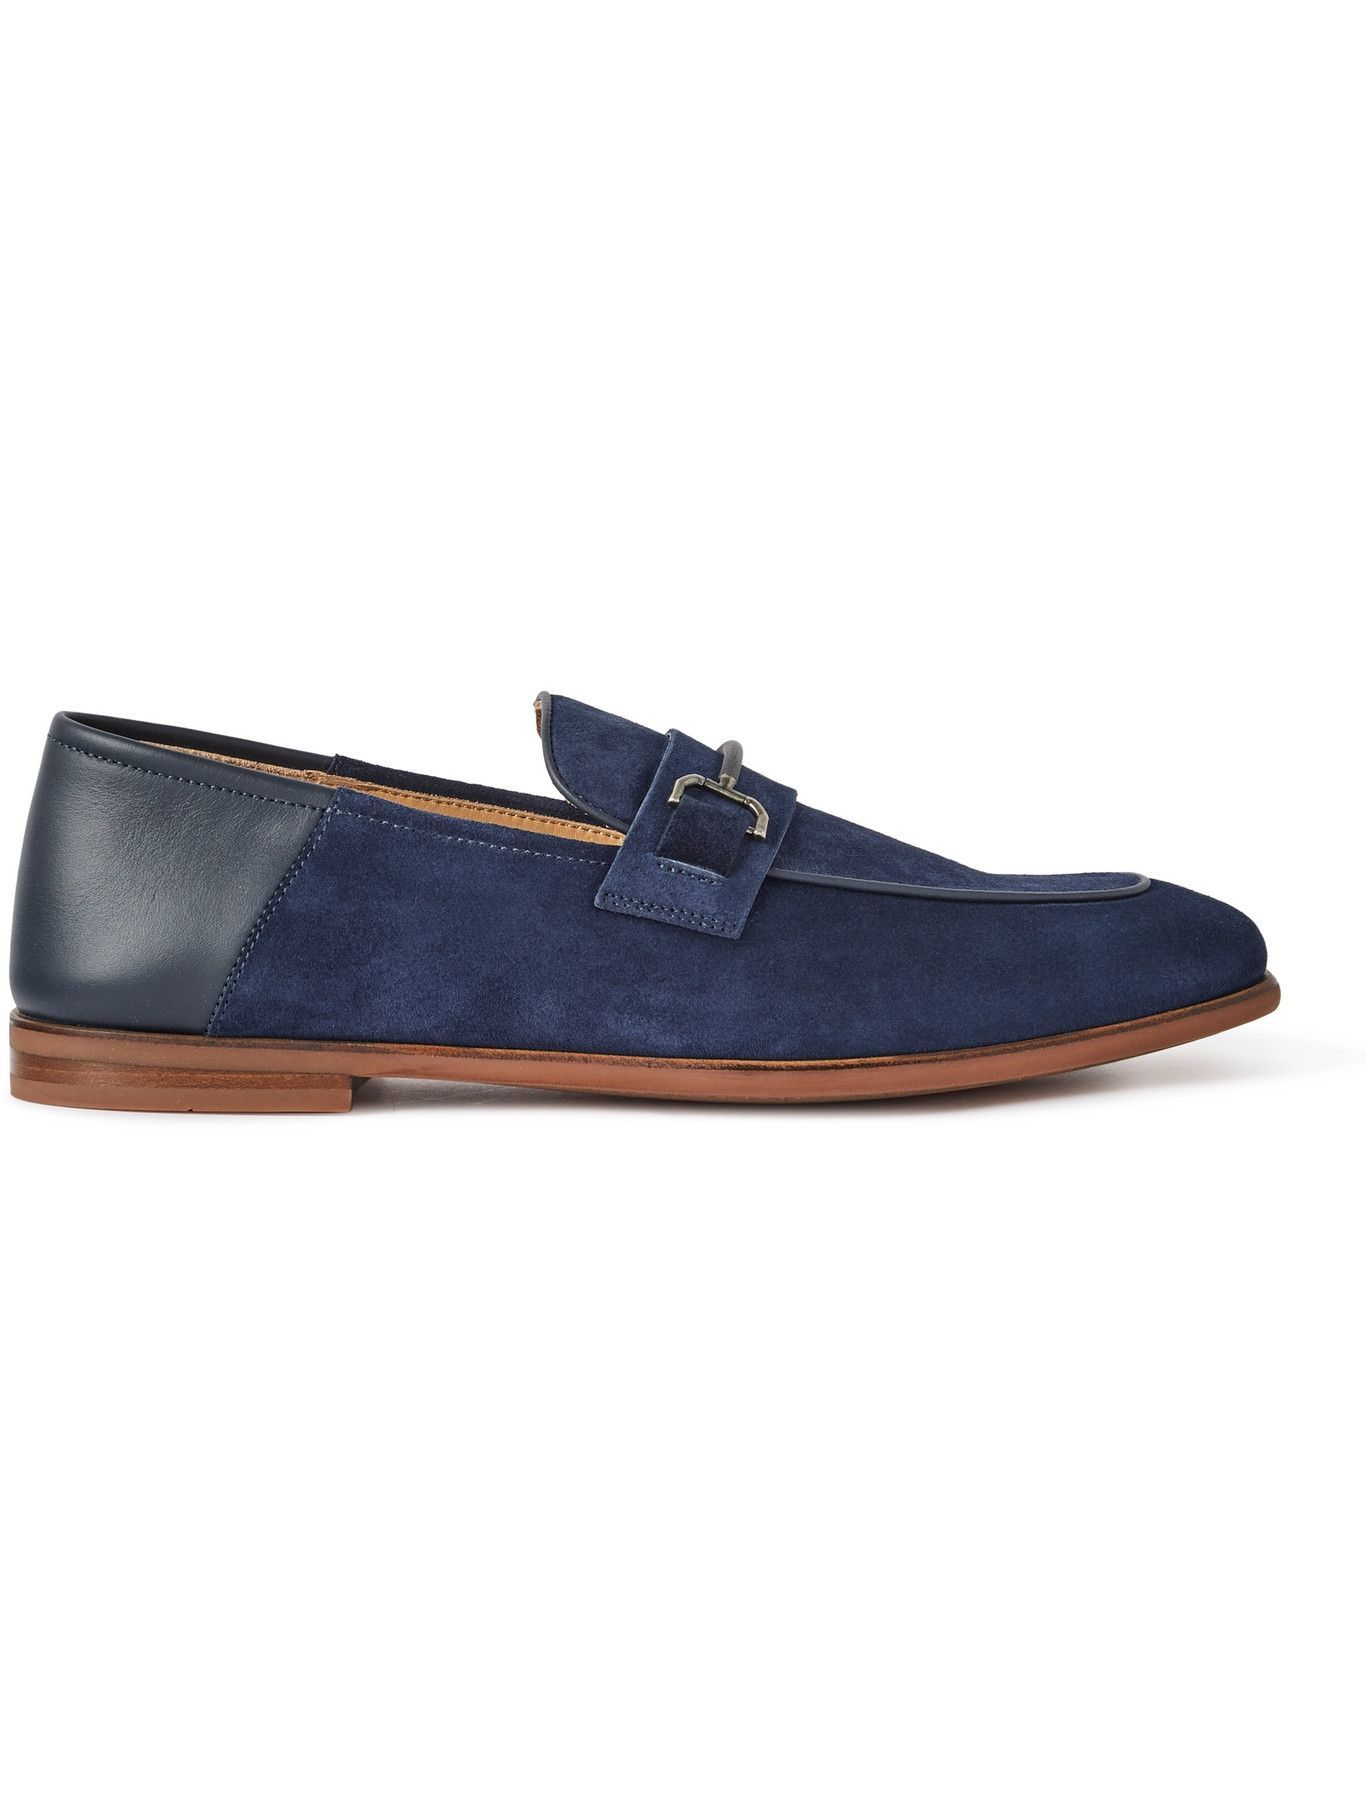 DUNHILL - Chiltern Suede and Leather Loafers - Blue